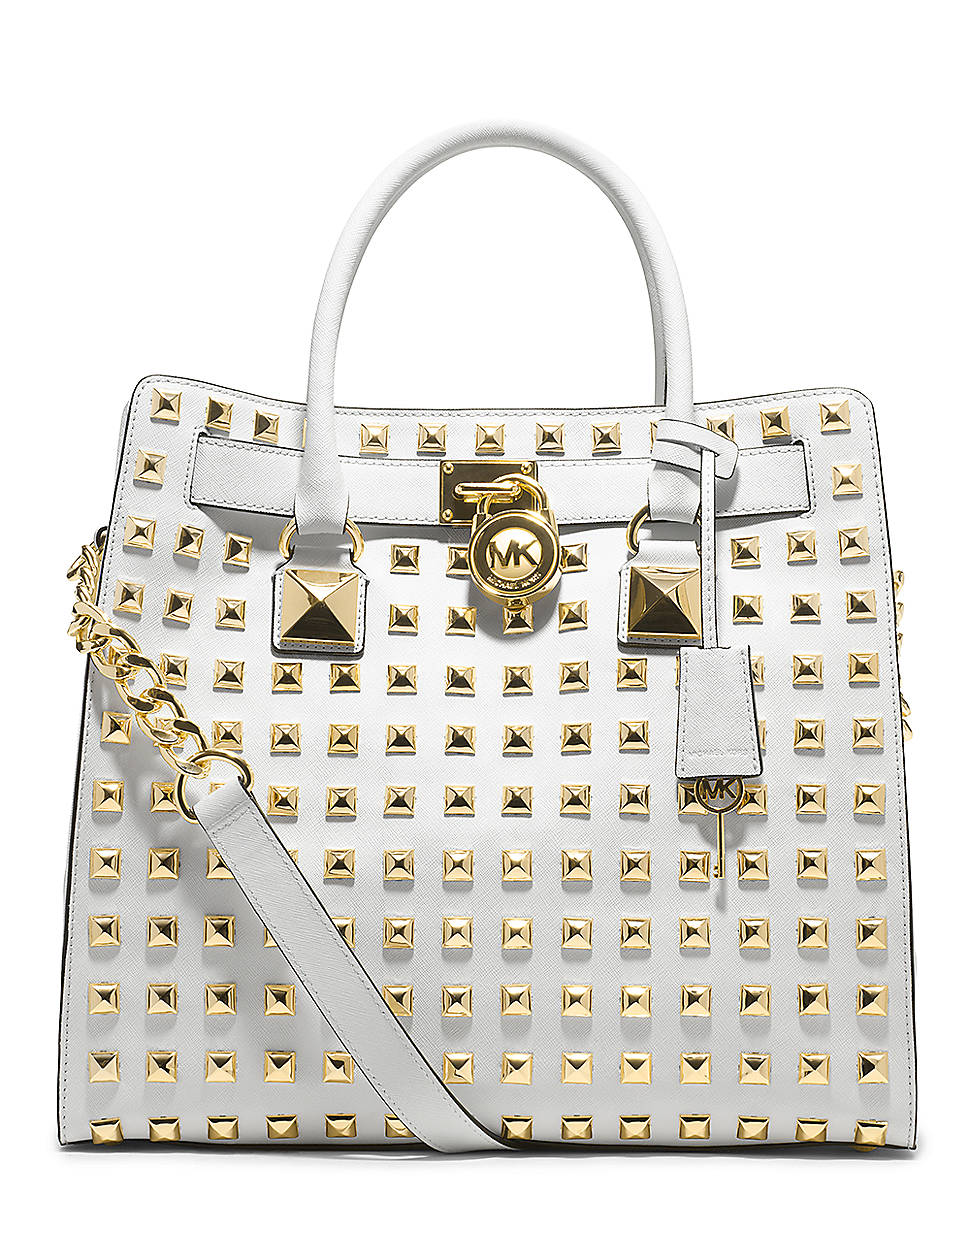 Free shipping BOTH ways on michael kors studded hamilton handbag, from our vast selection of styles. Fast delivery, and 24/7/ real-person service with a smile. Click or call